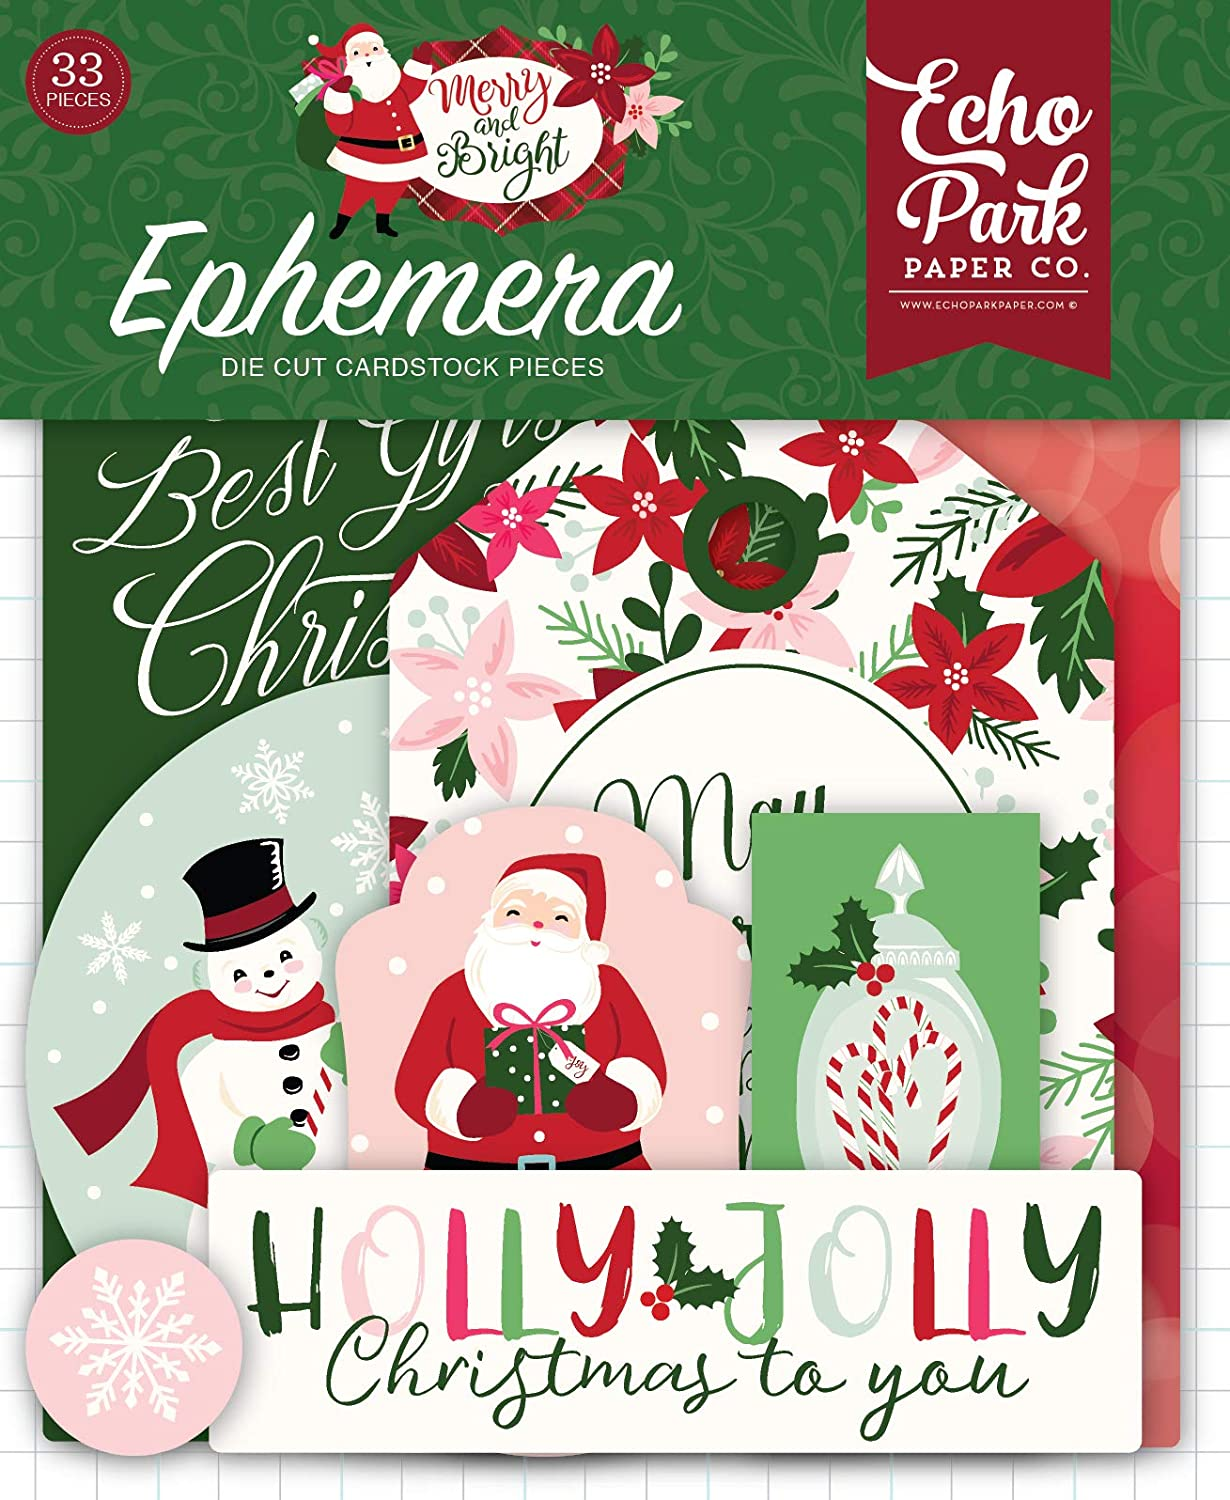 Echo Park Paper Company MB160024 Merry & Bright Ephemera, red, Green, Pink, Black, Gold, Mint